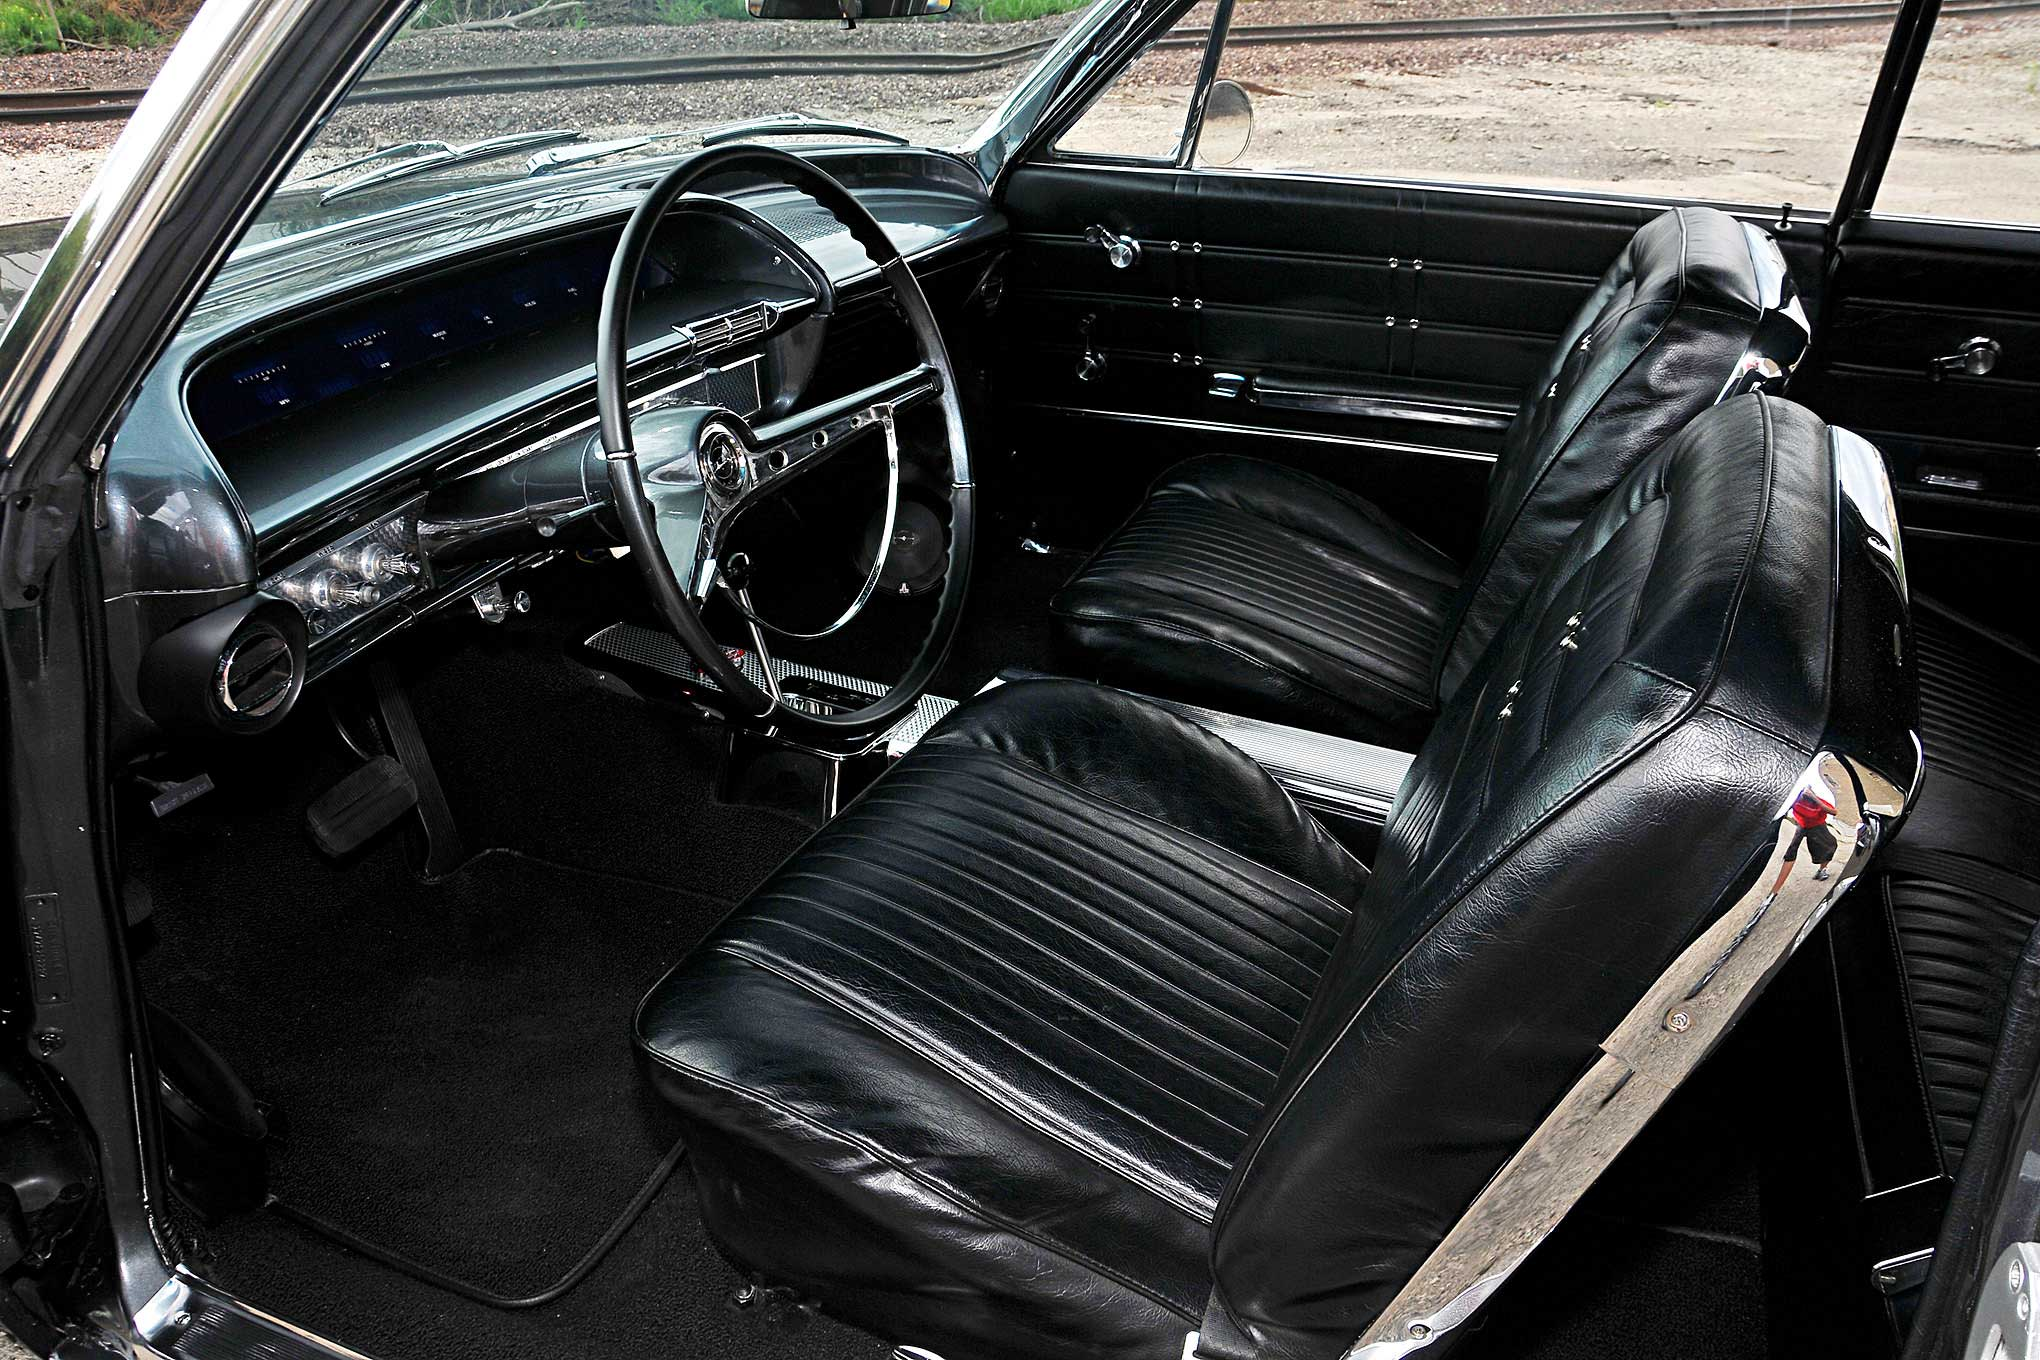 Chevy Impala Ss Interior Amazing Rear View With 1963 4 Door Sedan 283 Dash Wiring Harness W Fuse